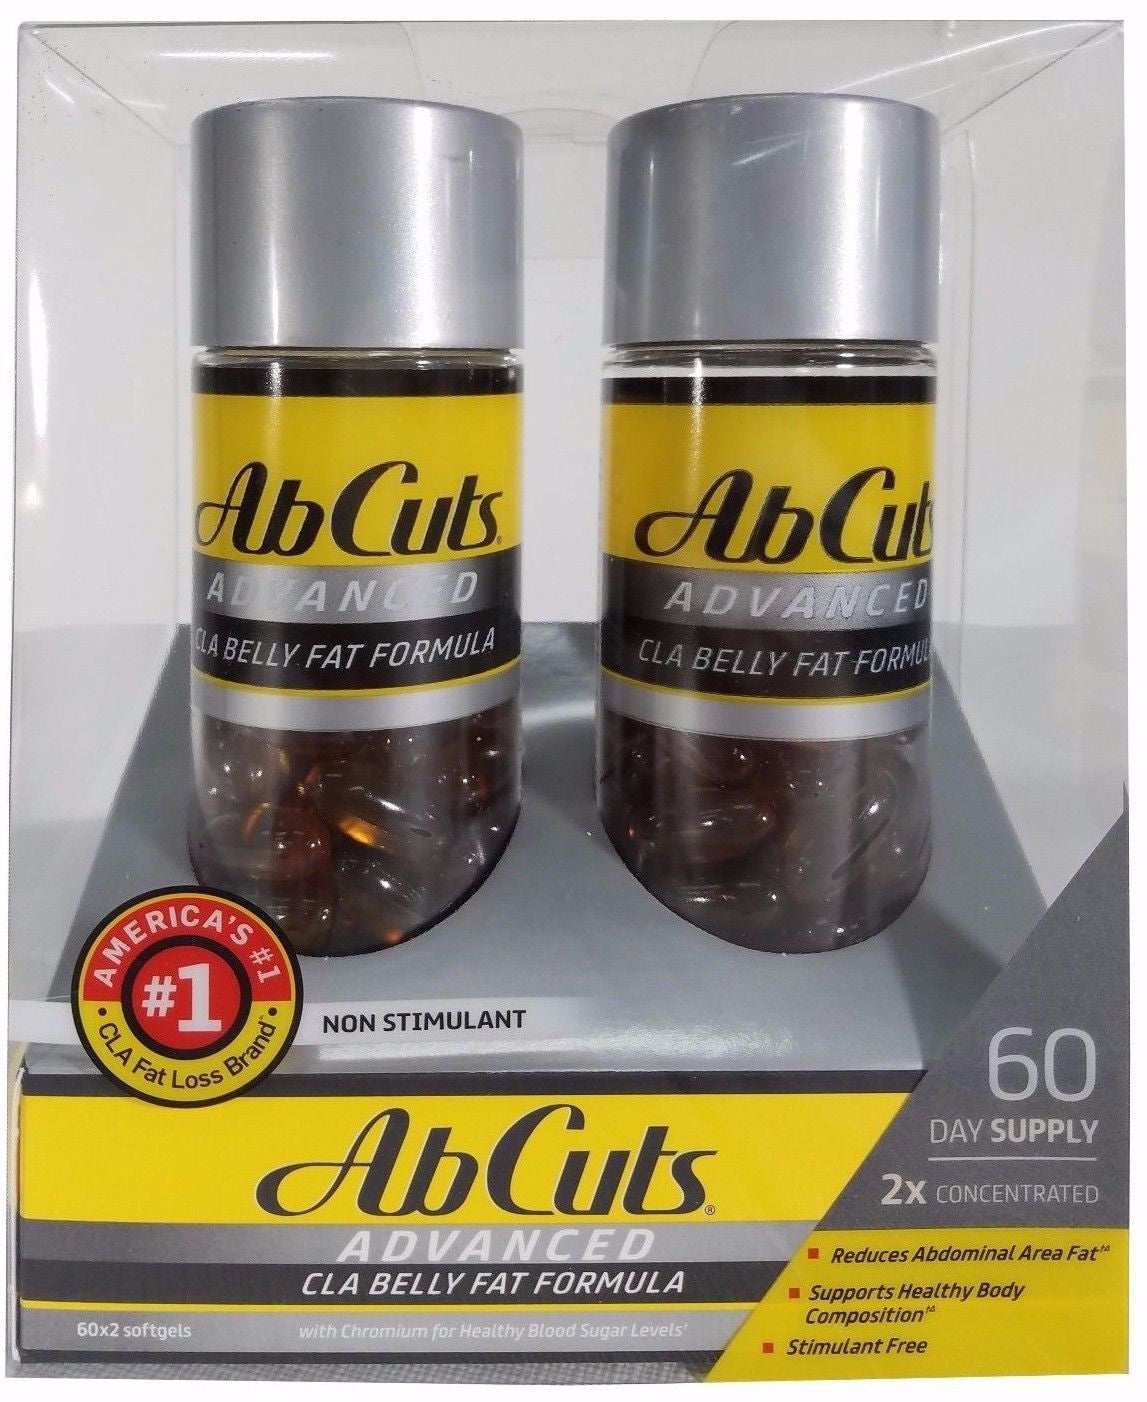 Ab Cuts Advanced CLA Belly Fat Formula 2x Concentrated 60 Day Supply